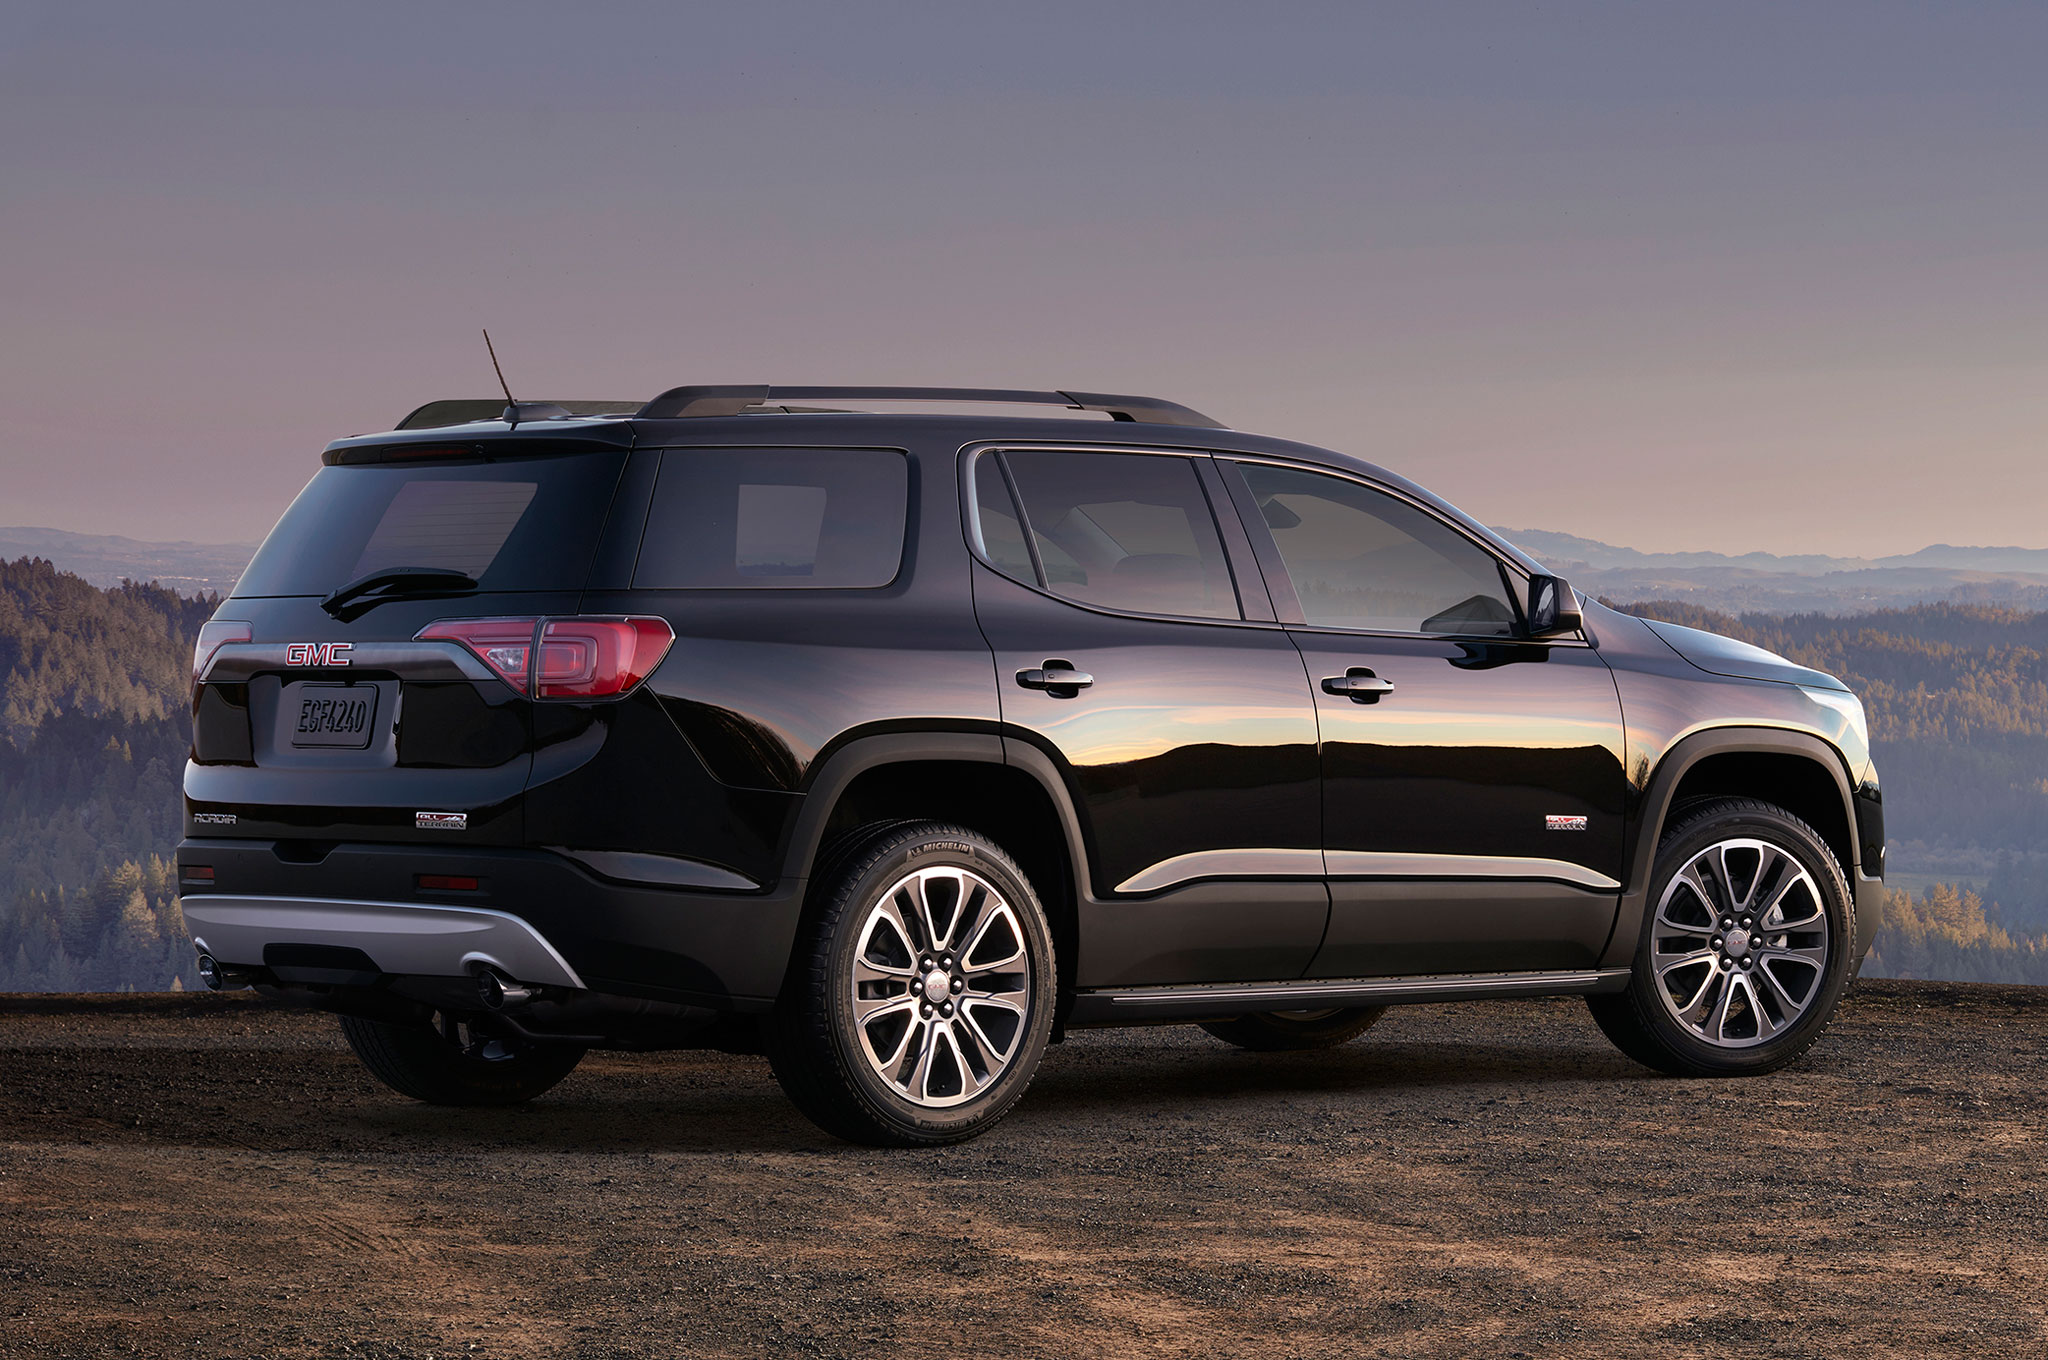 Worksheet. 7 Things You Need to Know About The 2017 GMC Acadia